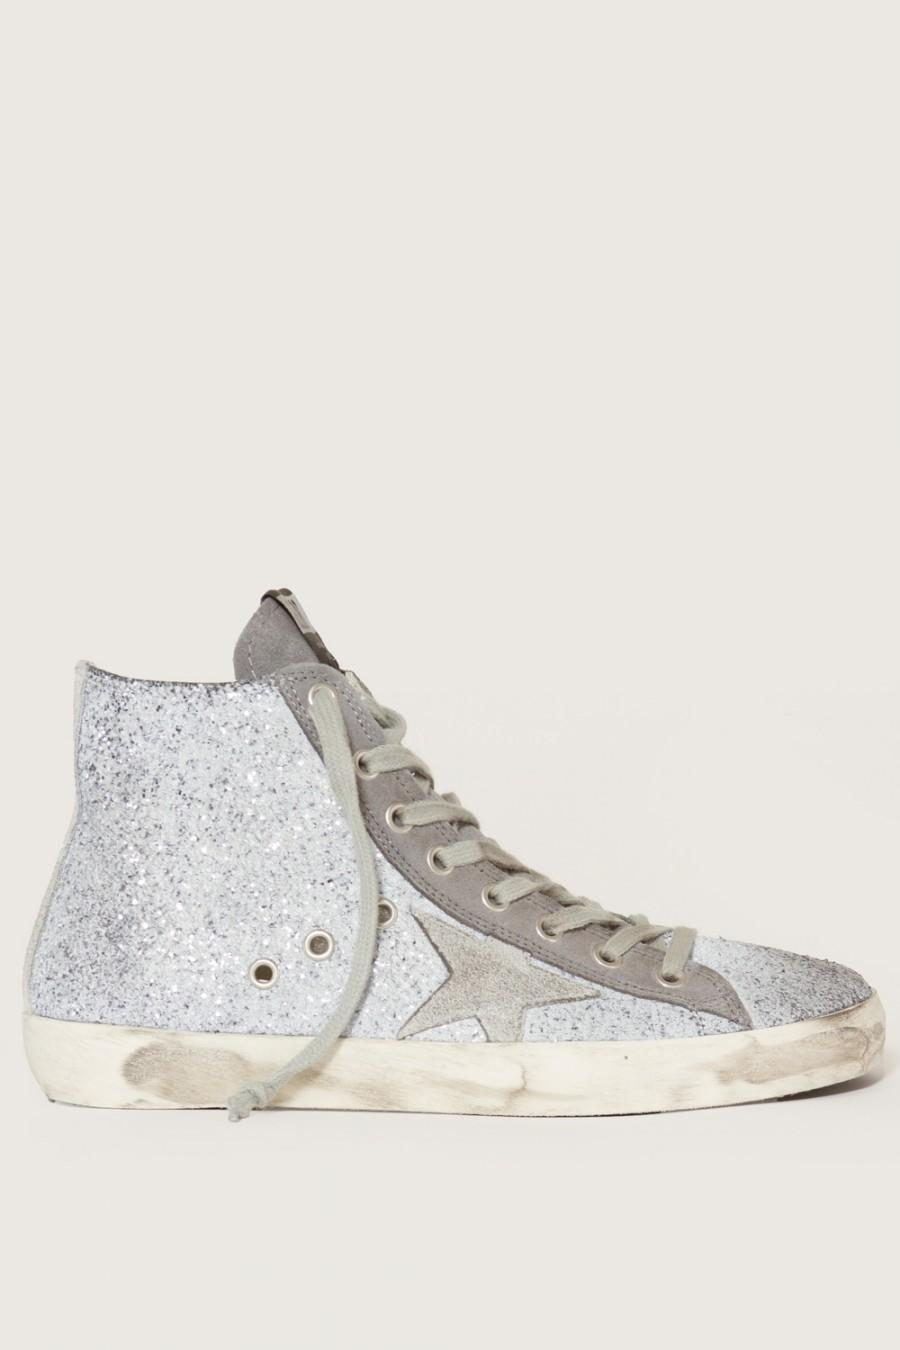 GOLDEN GOOSE Francy Distressed Glittered Suede High-Top Sneakers at MADISON LOS ANGELES